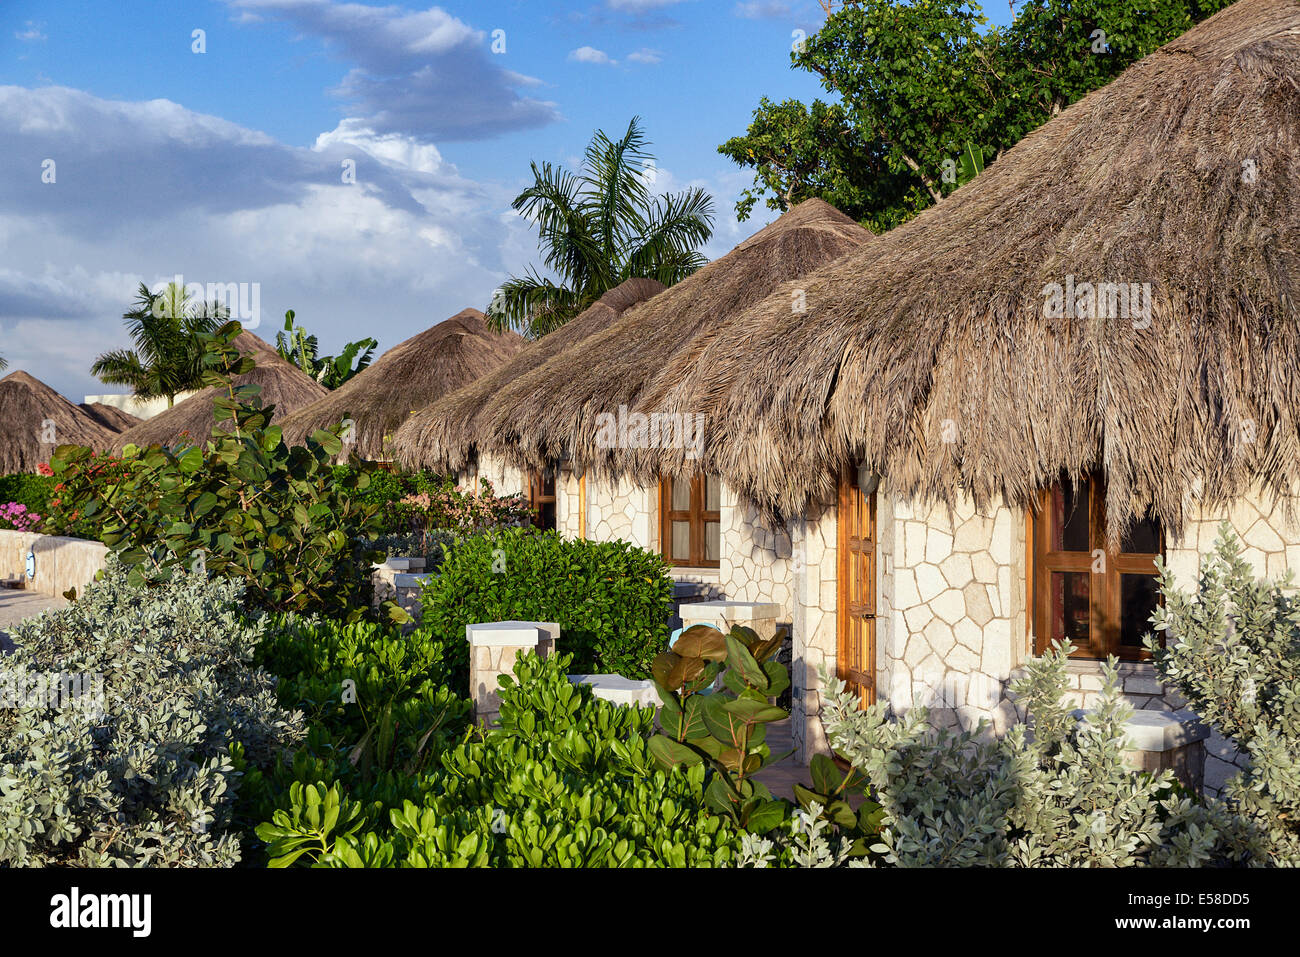 Die Spa Retreat boutique hotel Cottages mit Strohdach. Stockbild